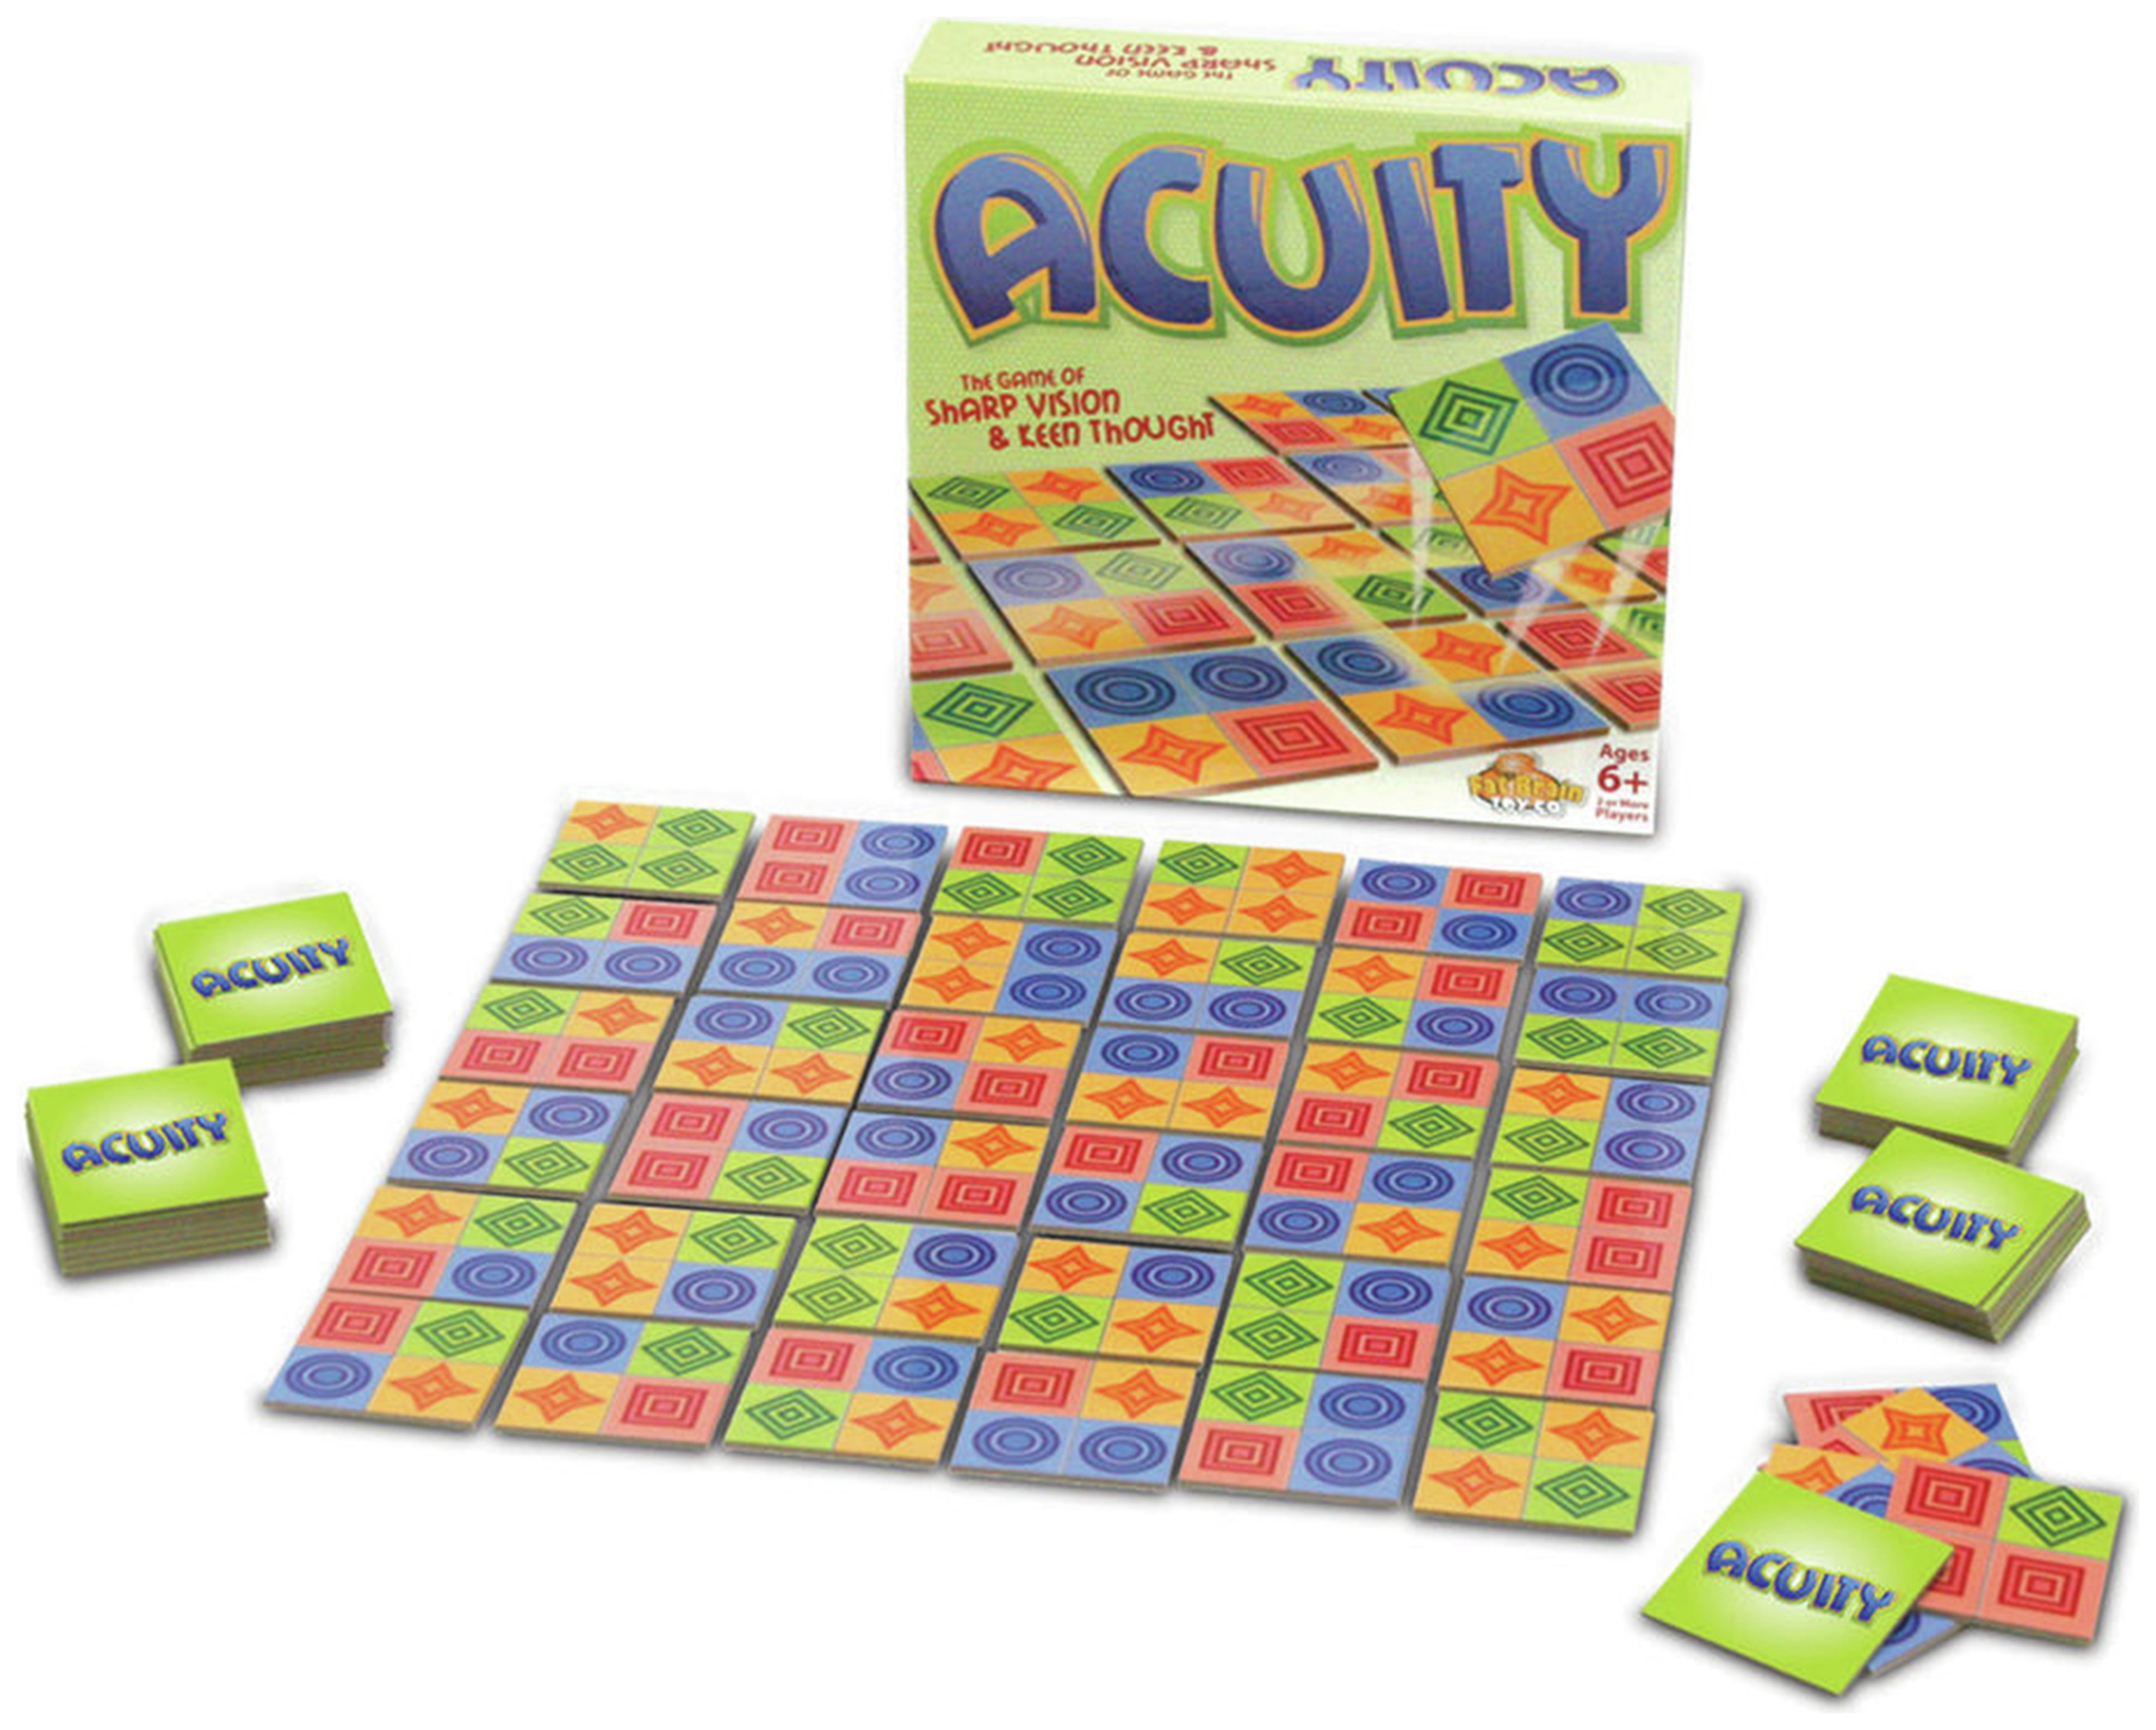 Image of Fat Brain Toys Acuity Game.